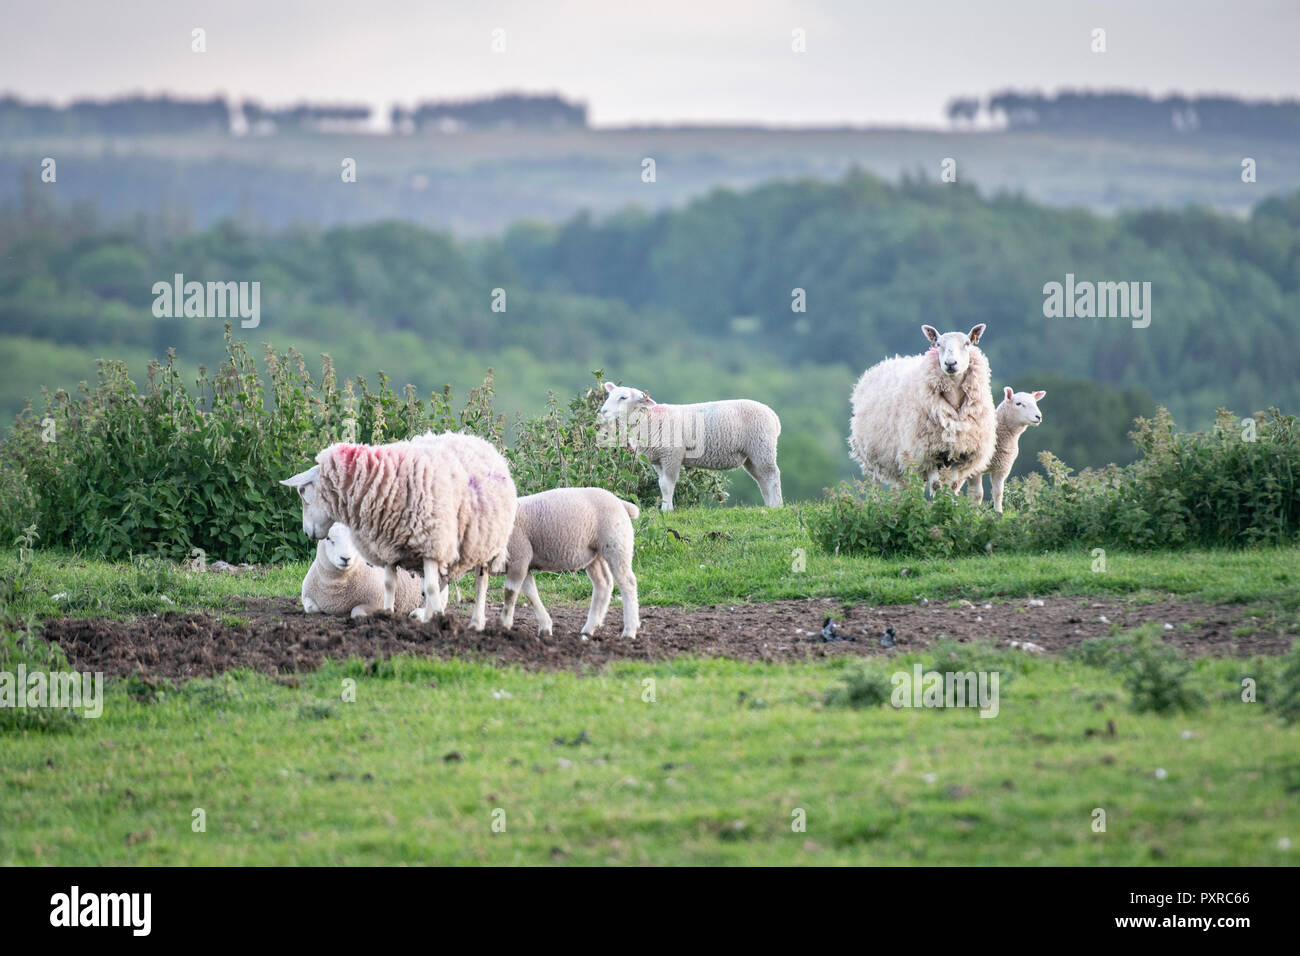 Mothers and their young lambs gather together in their grazing pastures outside Richmond, Yorkshire, UK. - Stock Image